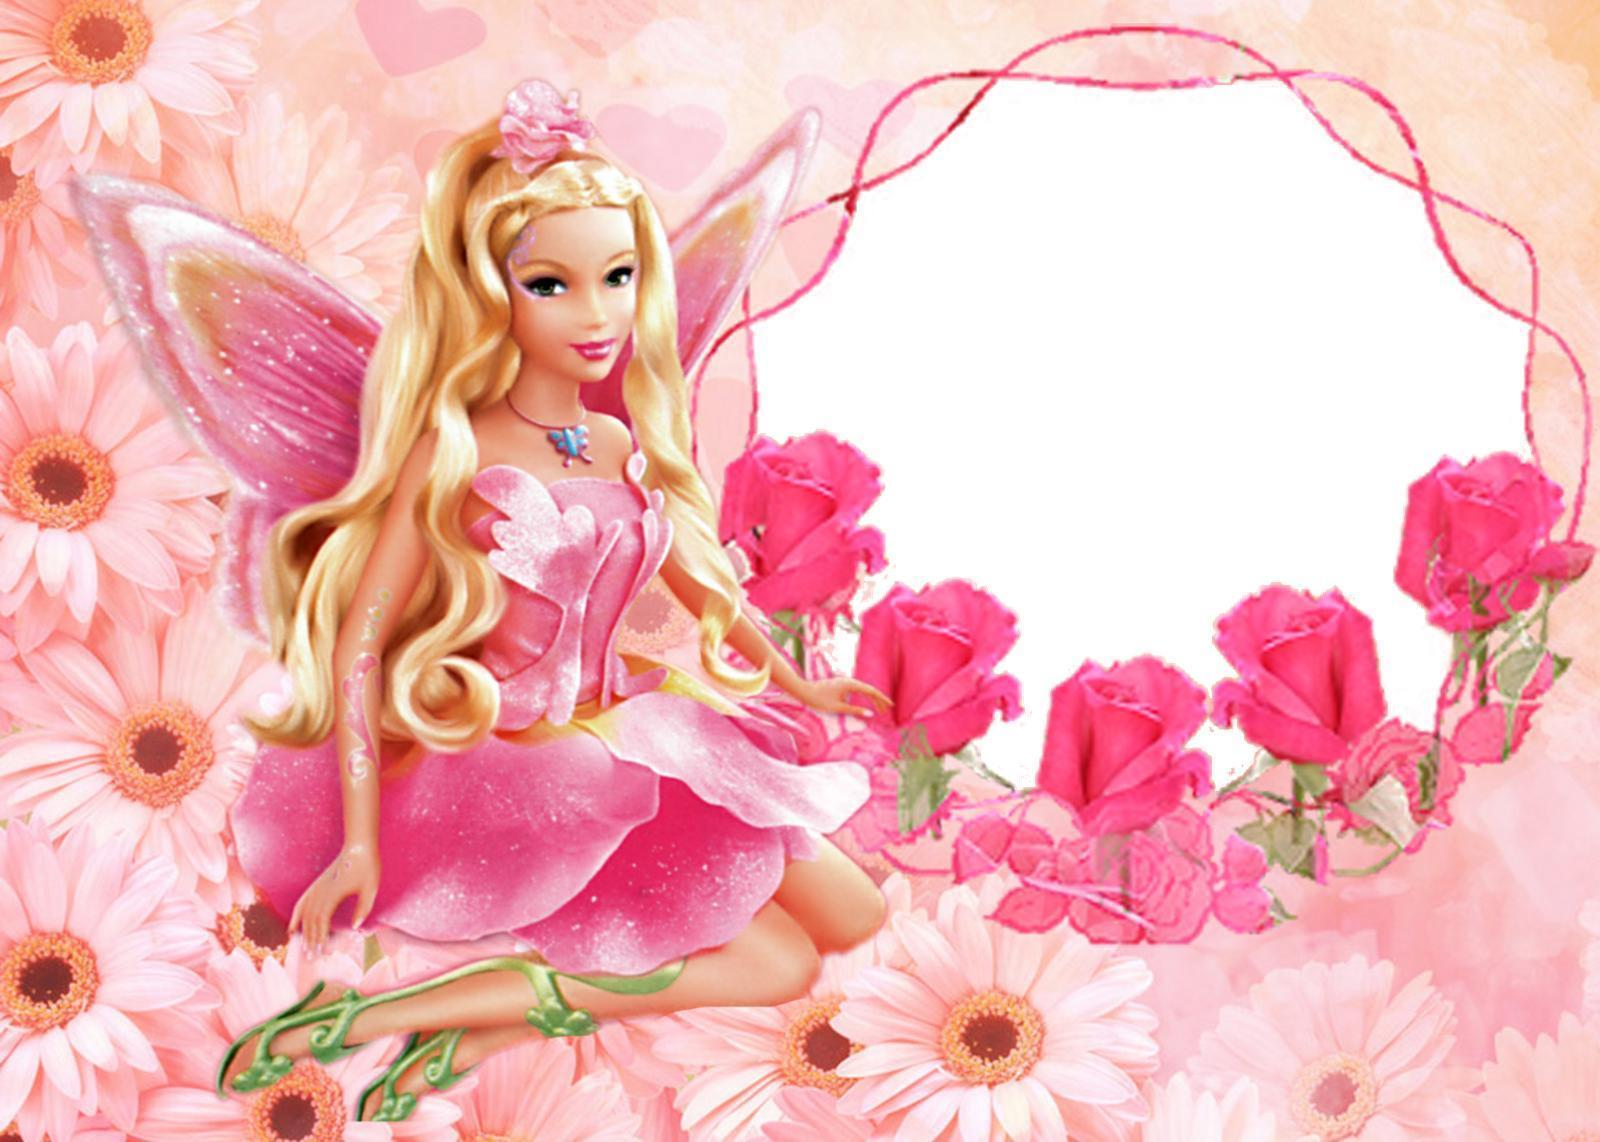 Barbie Pink Fullscreen Wallpaper | Wallpaper Magazine